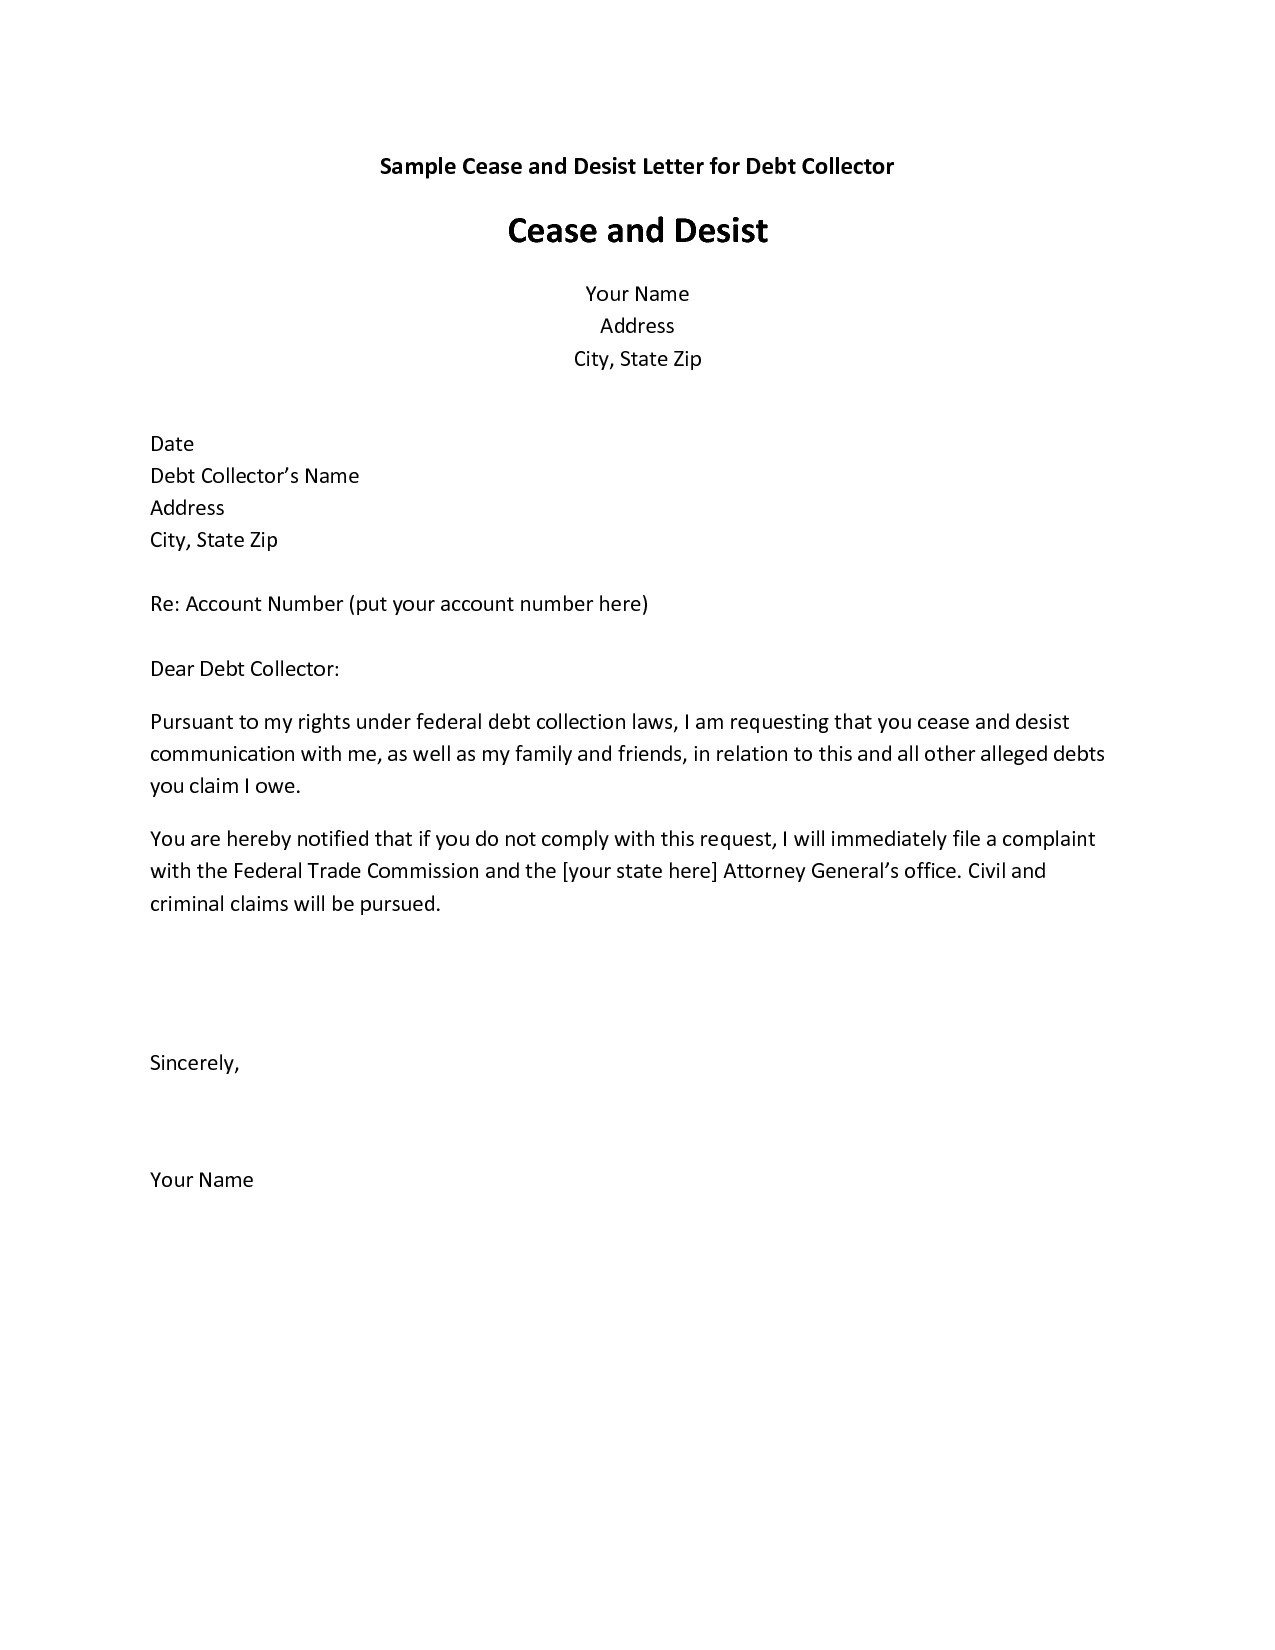 Credit Agency Dispute Letter Template - New Dispute Letter to Credit Bureau Template